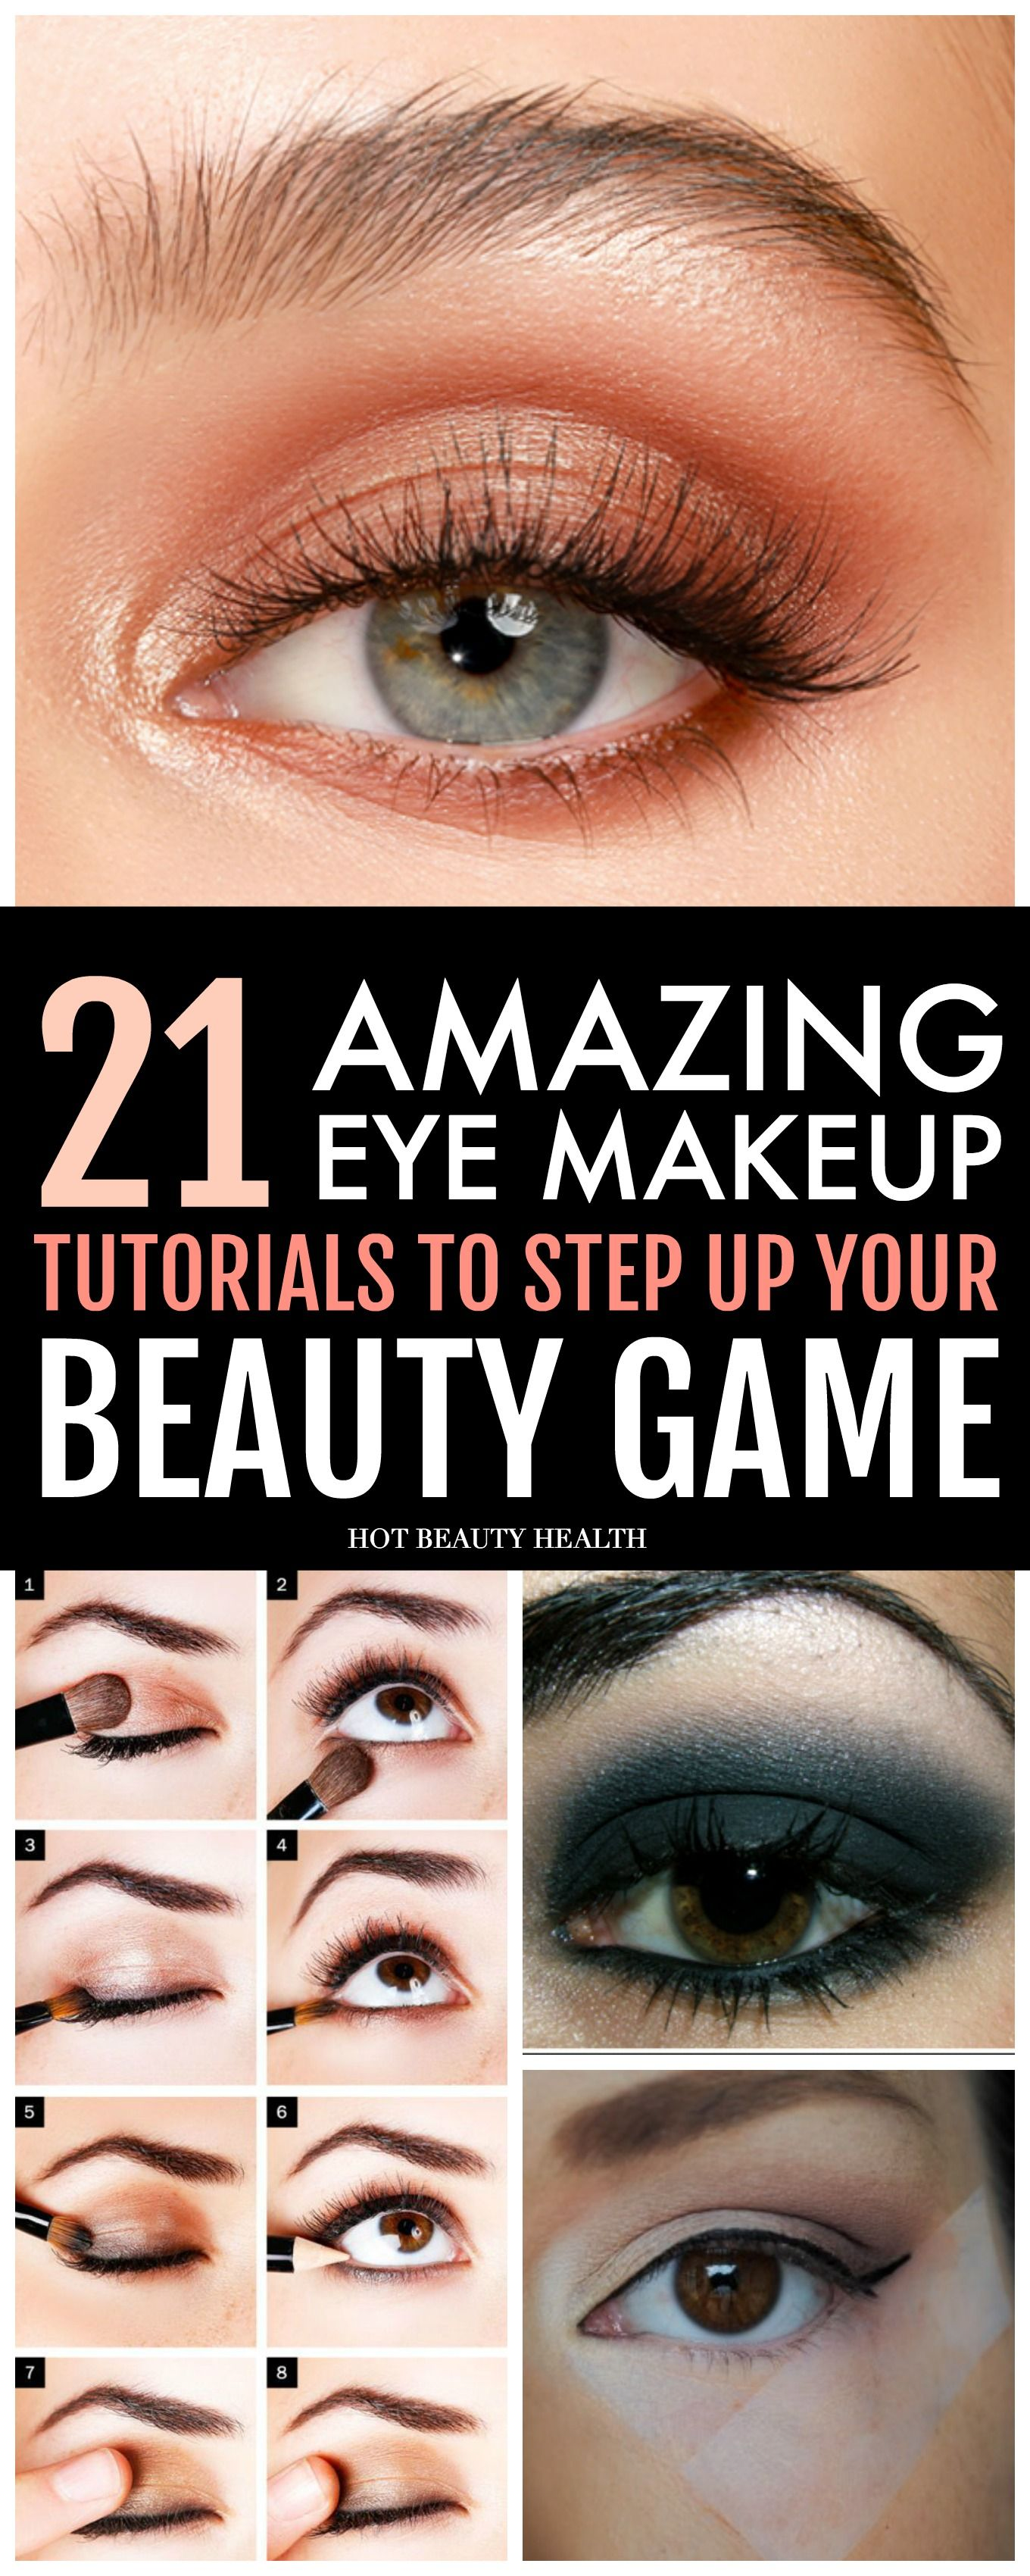 21 Dramatic Eye Make Up Tips, Ideas, and Tutorials For